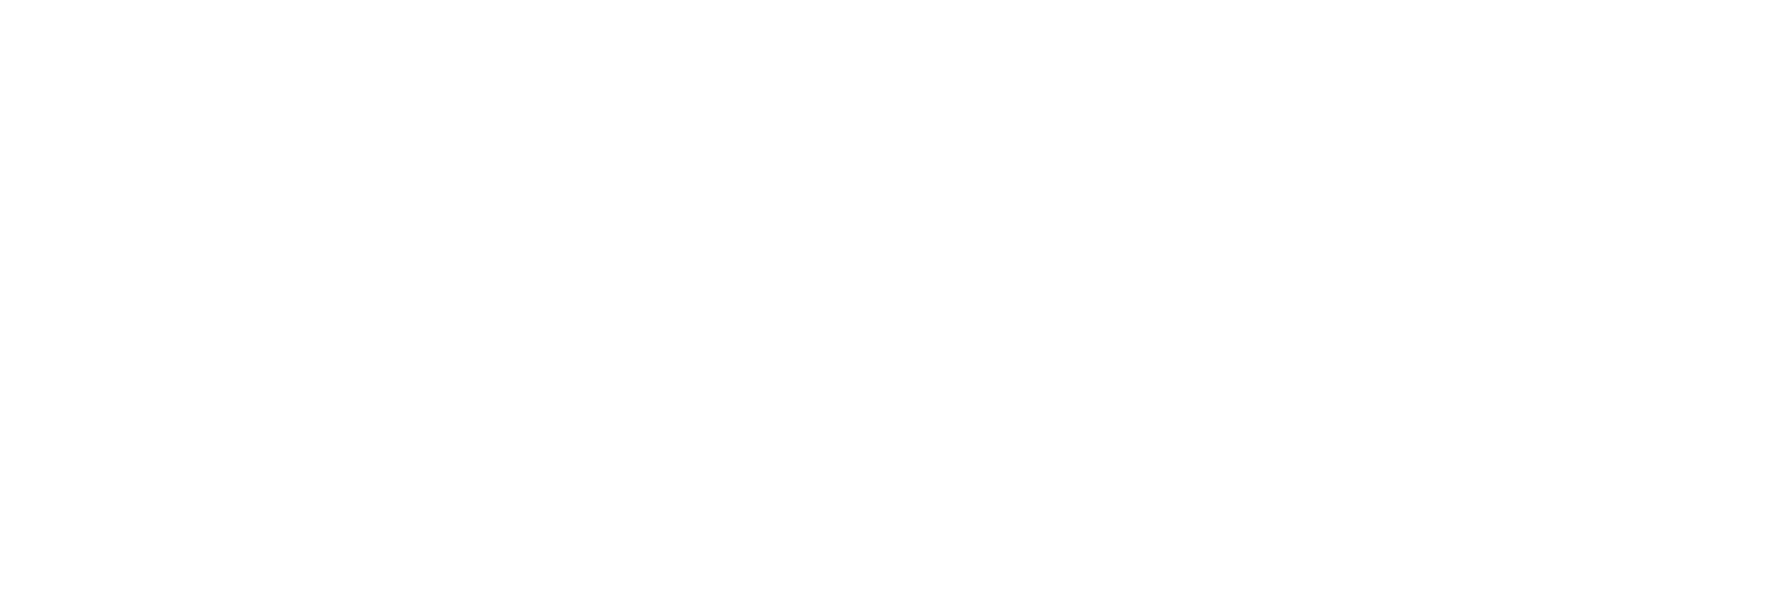 8th International Conference on Education and Management Innovation (ICEMI 2019)